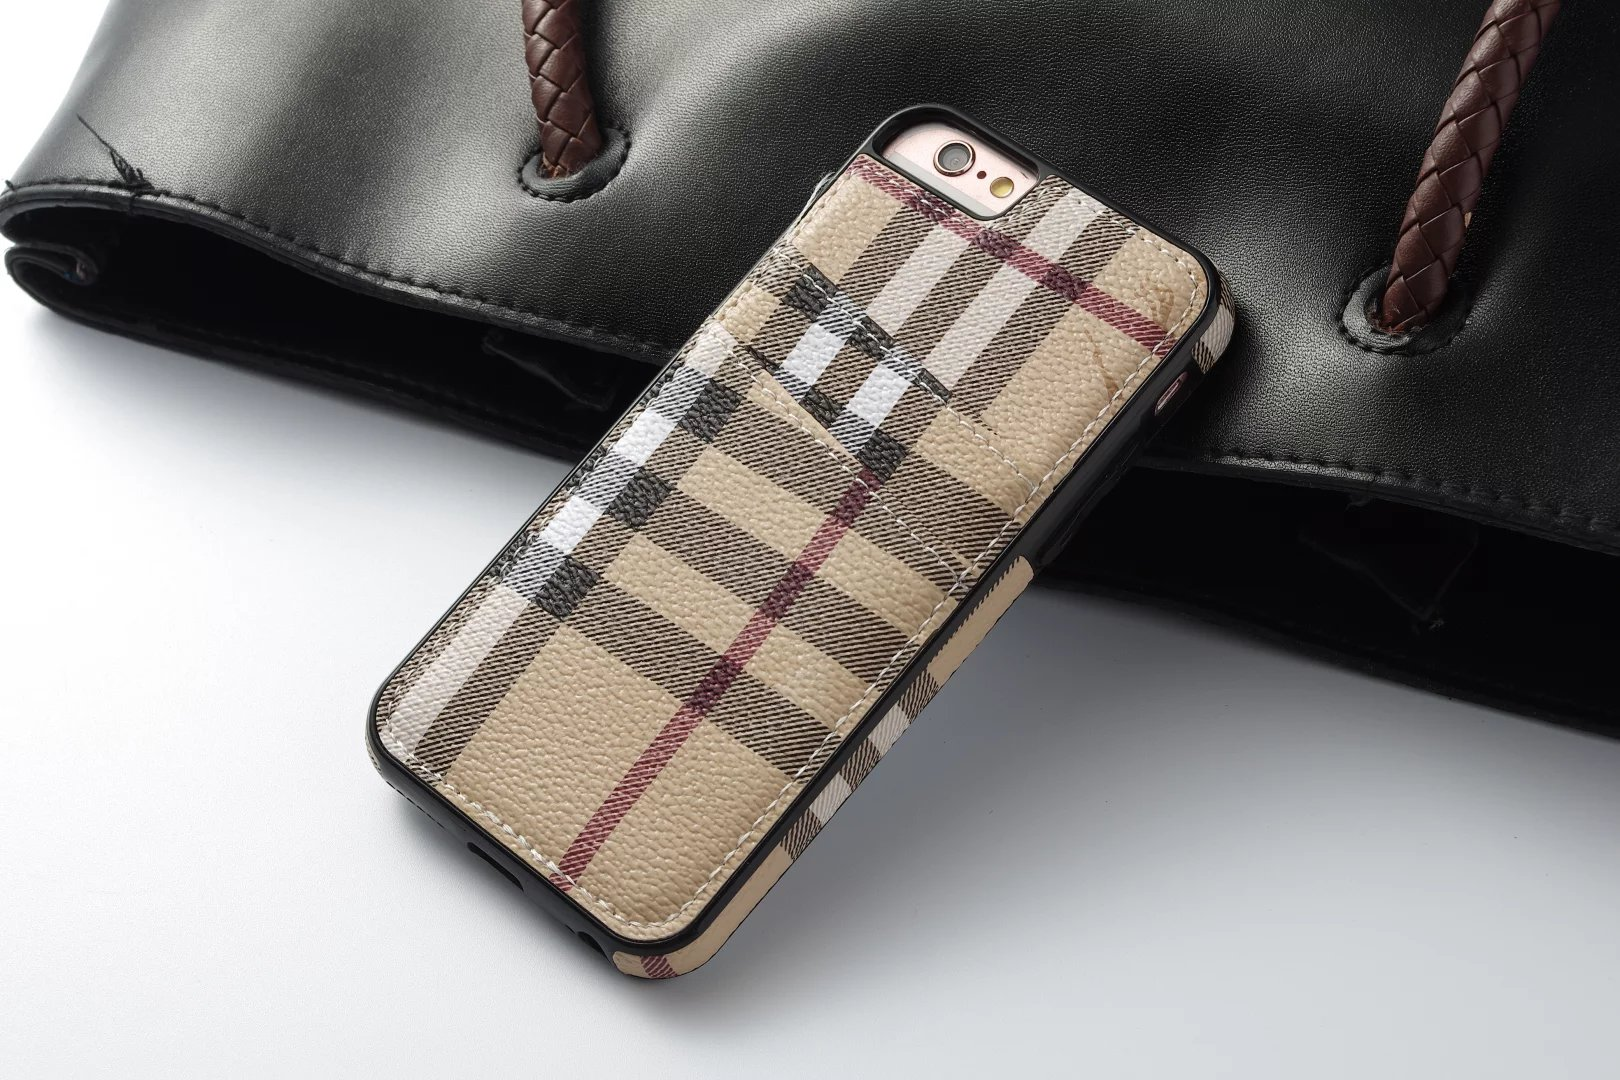 best iphone 8 covers iphone 8 cases and covers Burberry iphone 8 case 8 case iphone best cell phone cases iphone 8 cases fashion top cases for iphone 8 create your own phone case iphone 8 cell phone cases online